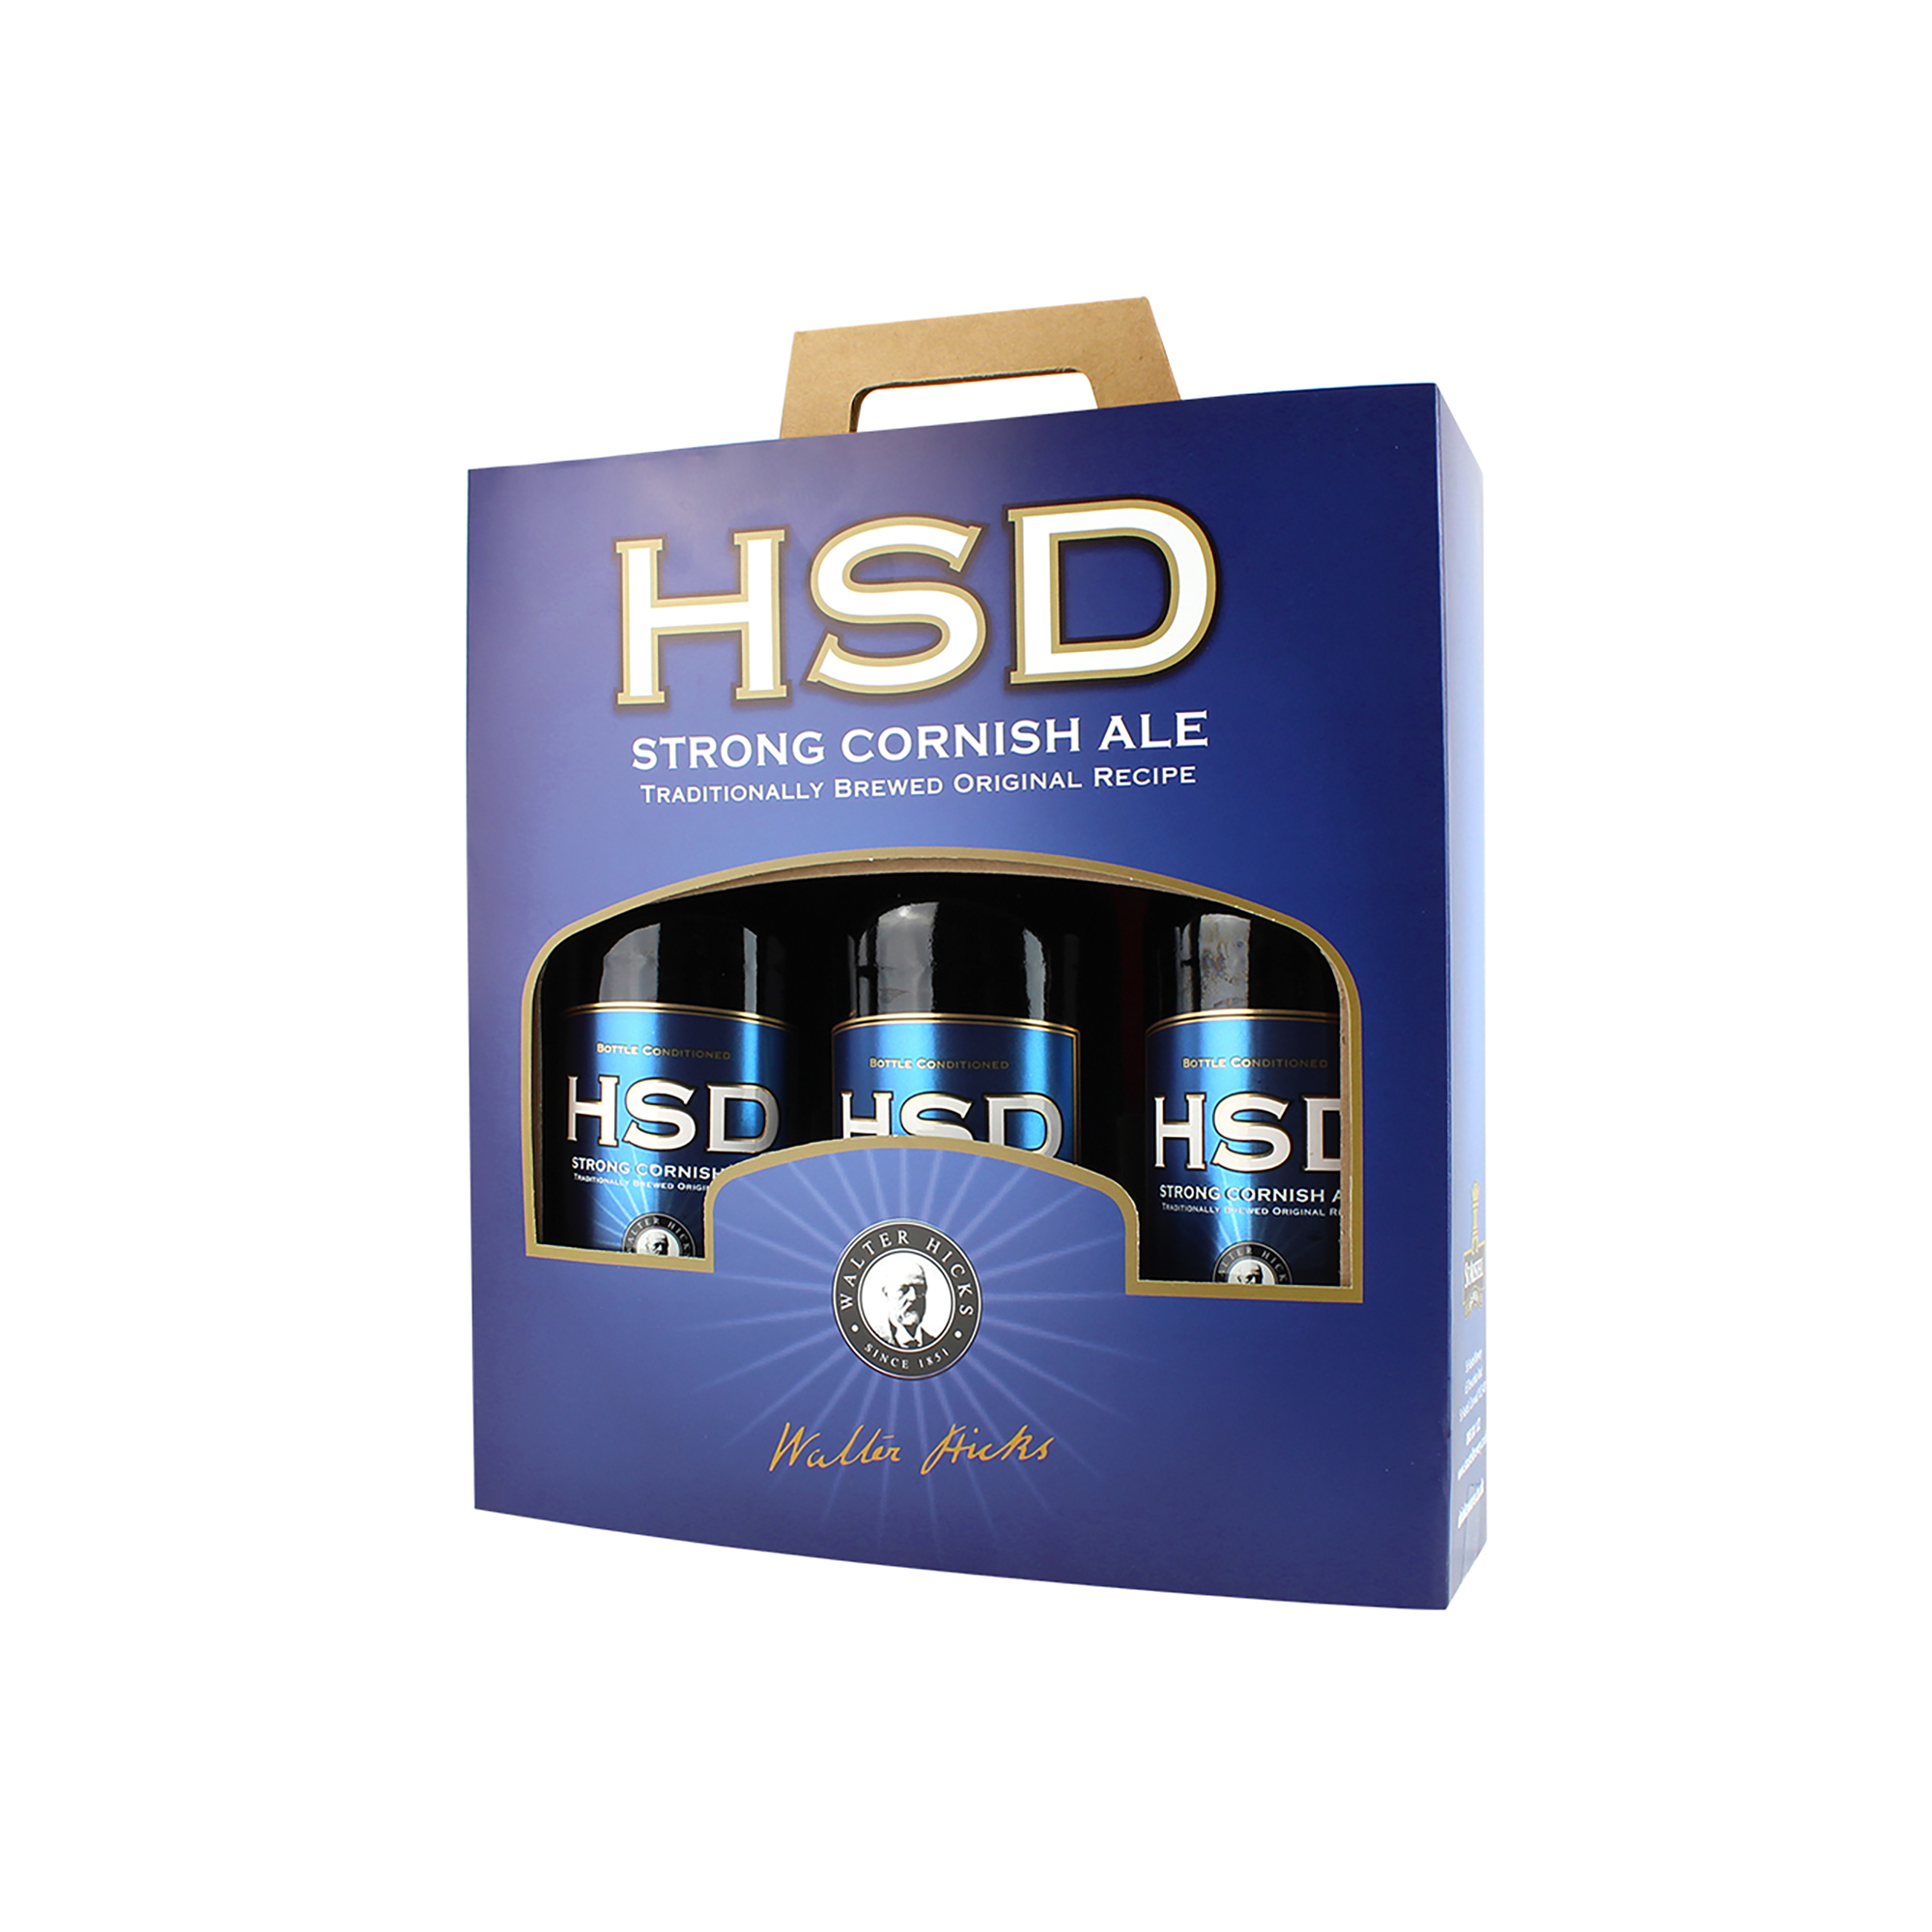 HSD Three Bottle Gift Pack